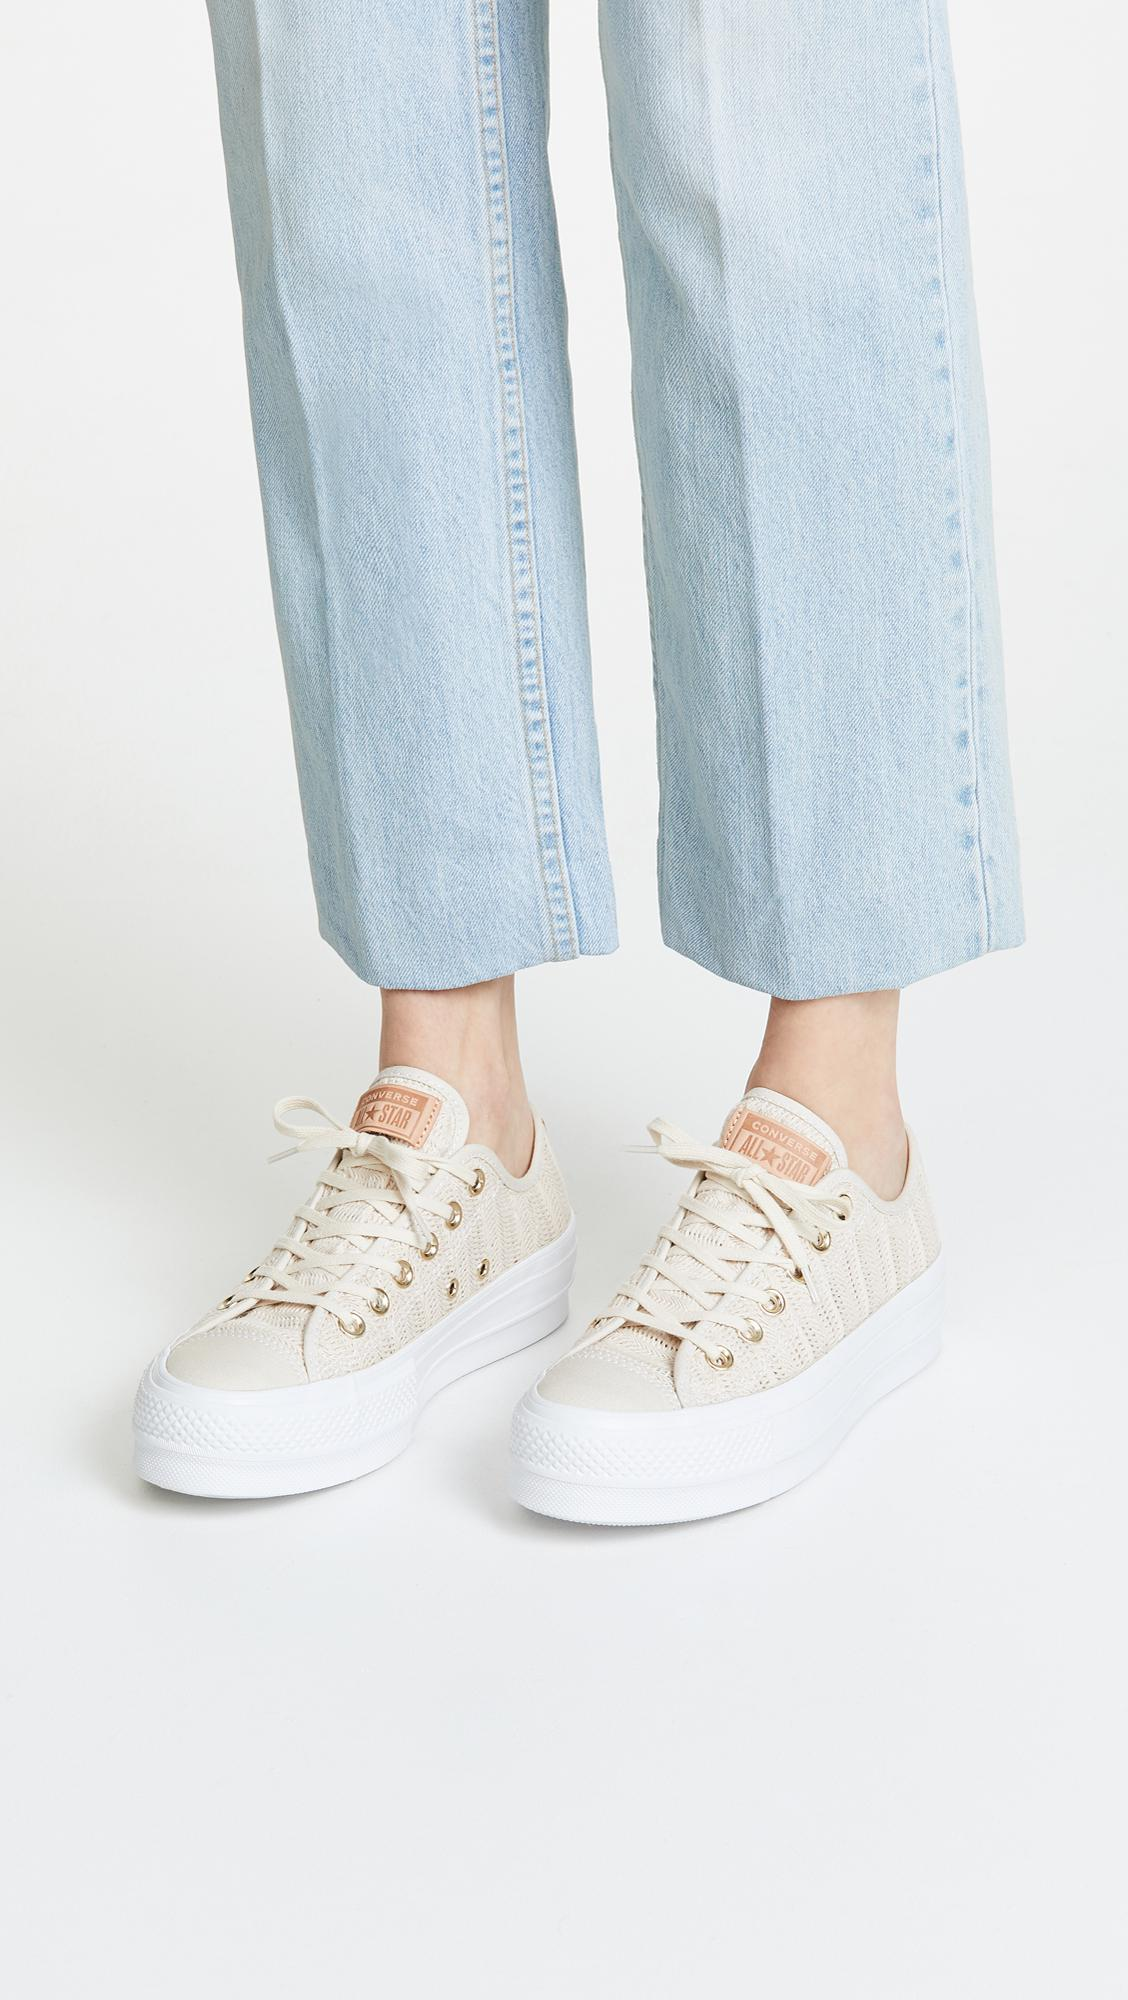 fa9729f60184dc Converse - White Chuck Taylor All Star Lift Ox Sneakers - Lyst. View  fullscreen